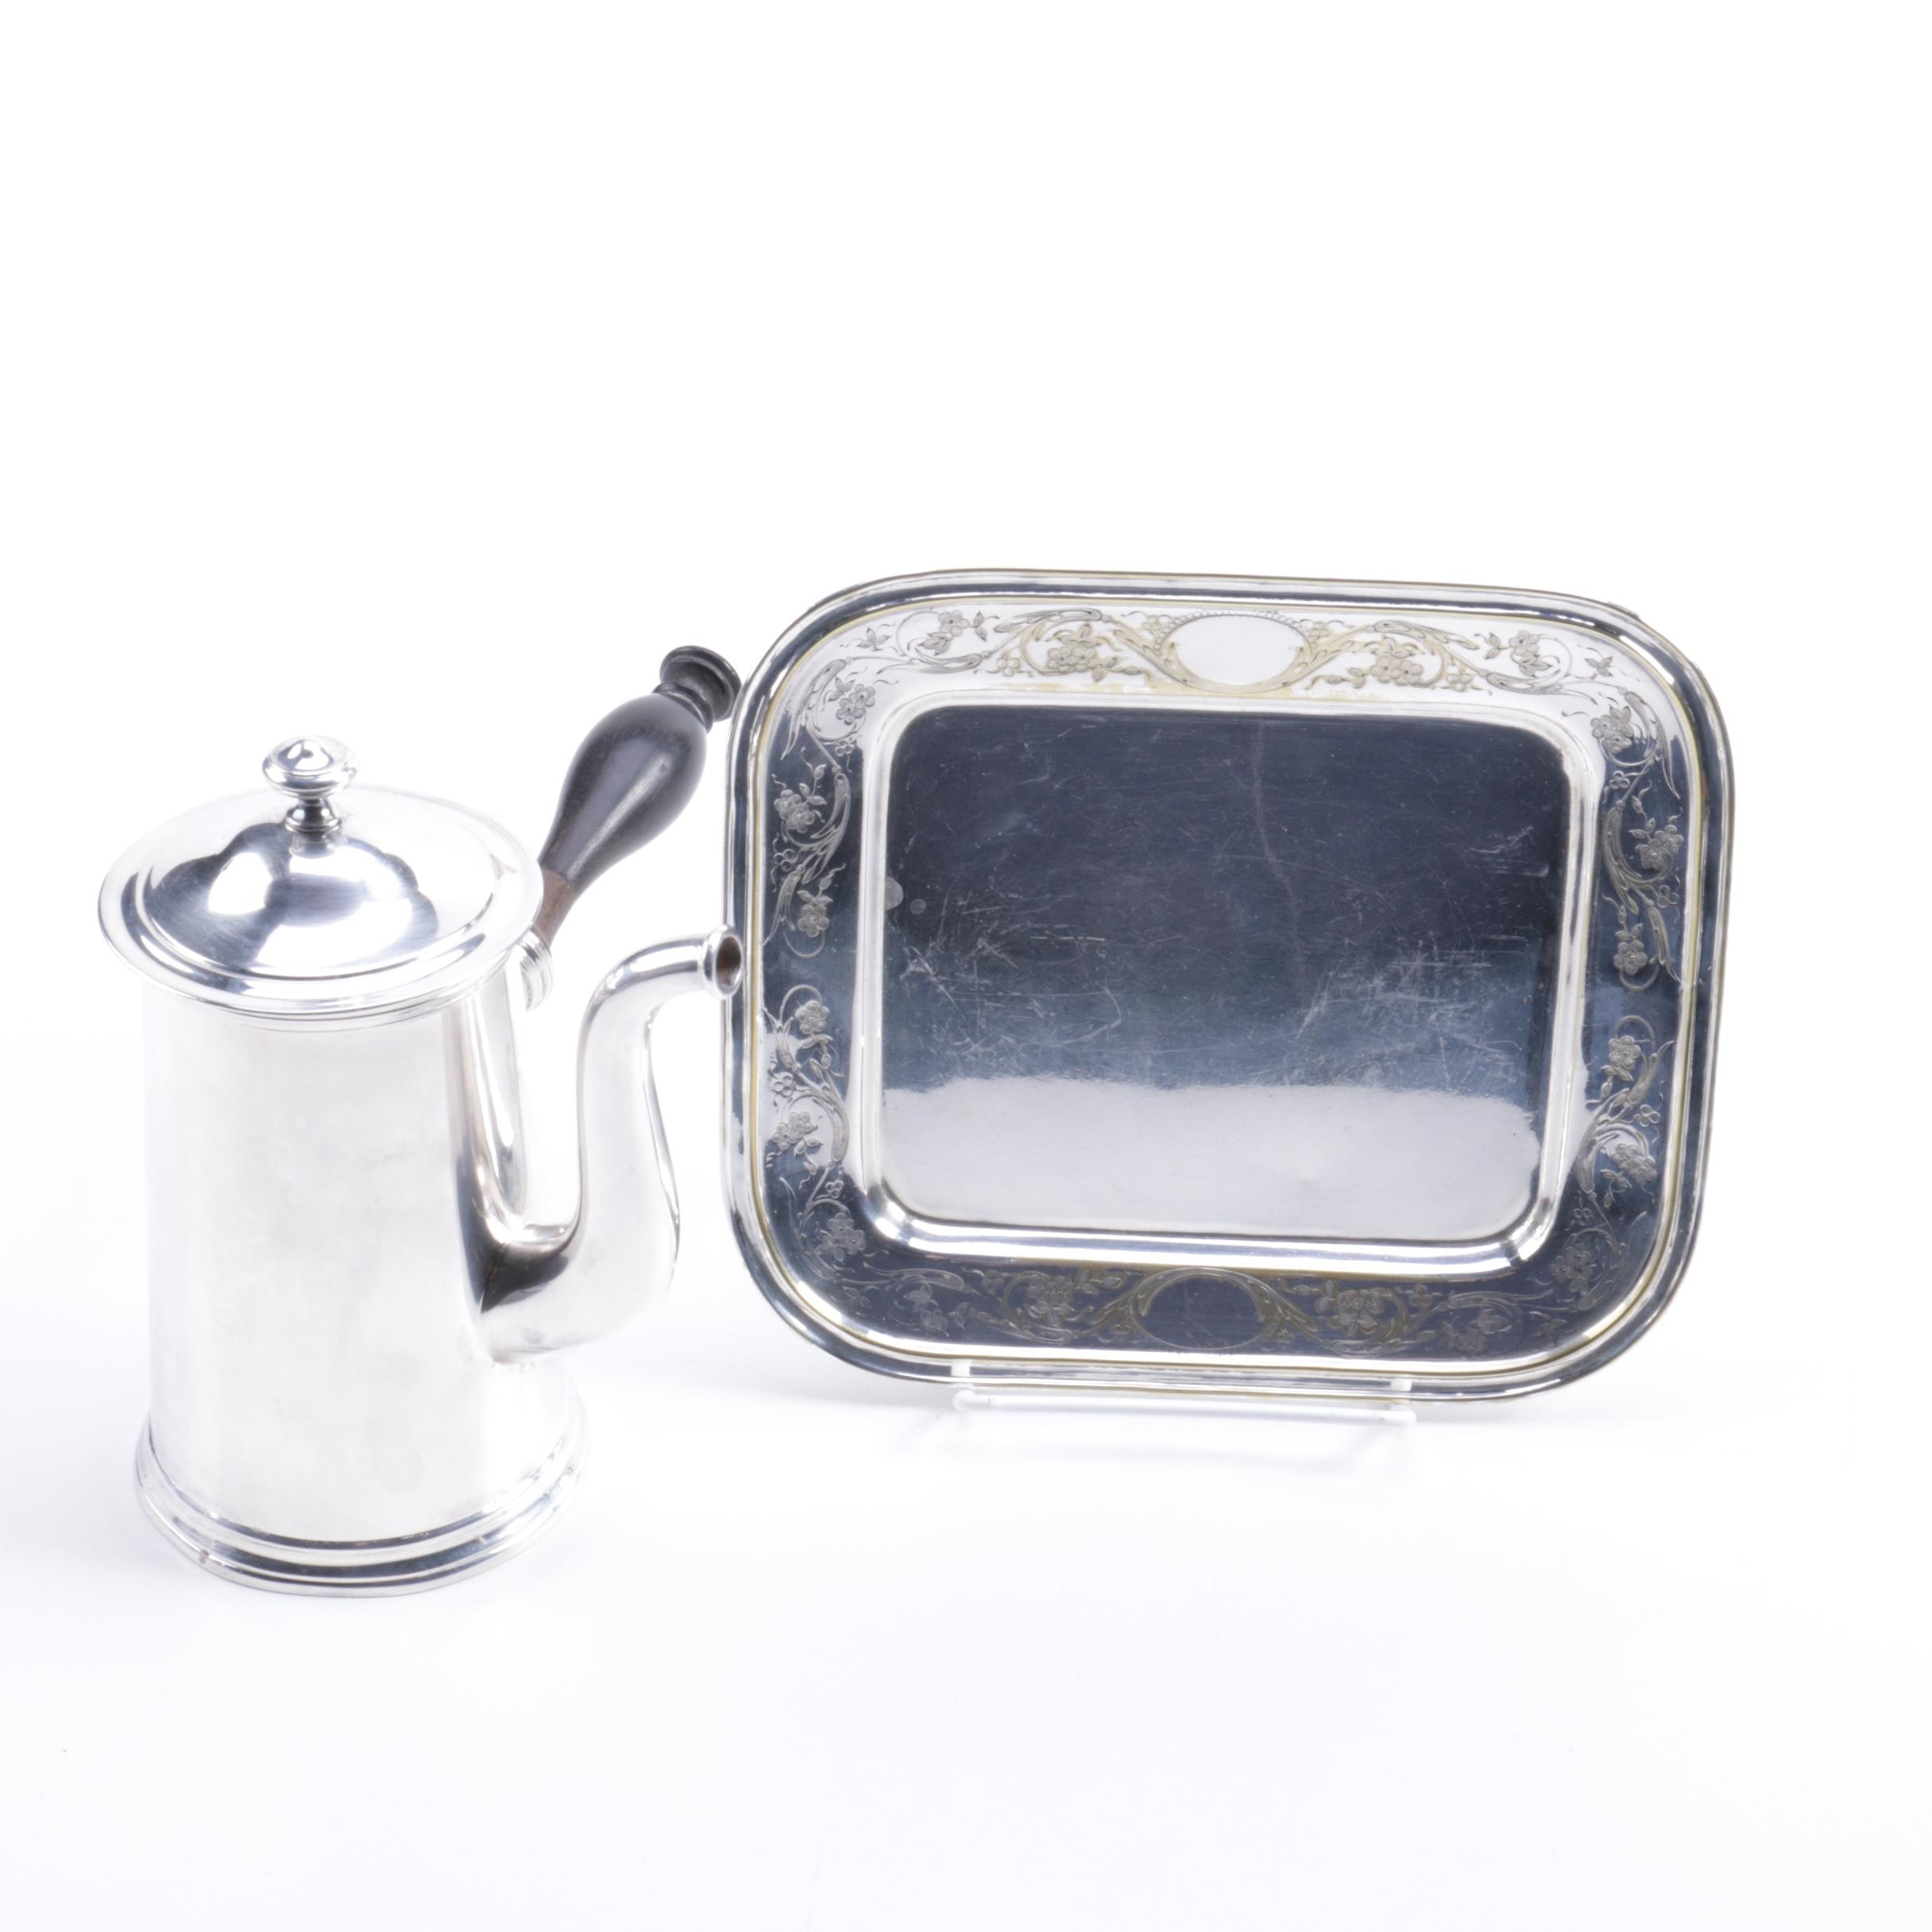 Christofle Silver-Plated Chocolate Pot and Platter